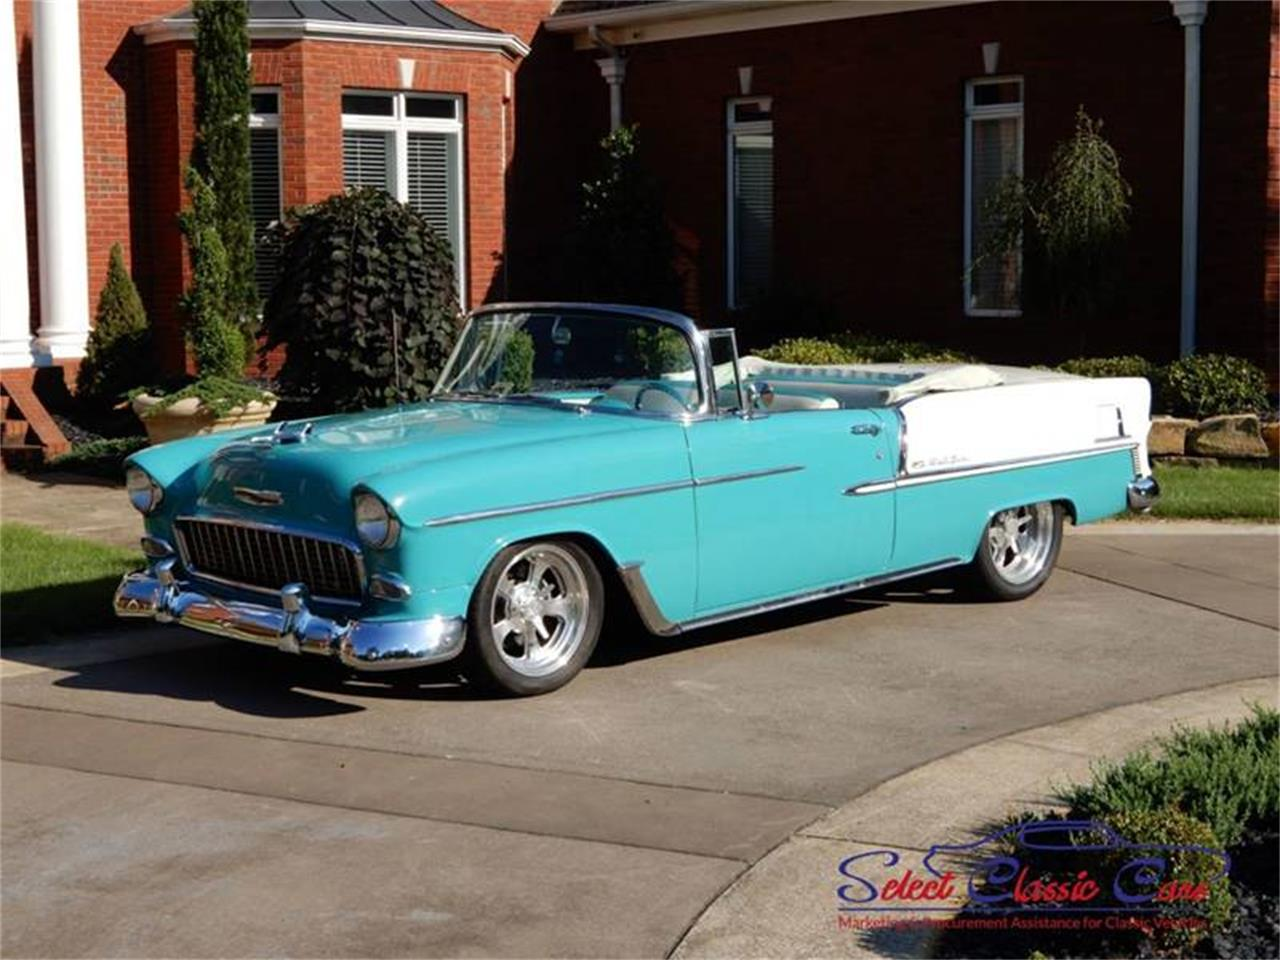 Large Picture of '55 Chevrolet Bel Air located in Georgia Offered by Select Classic Cars - NSM8